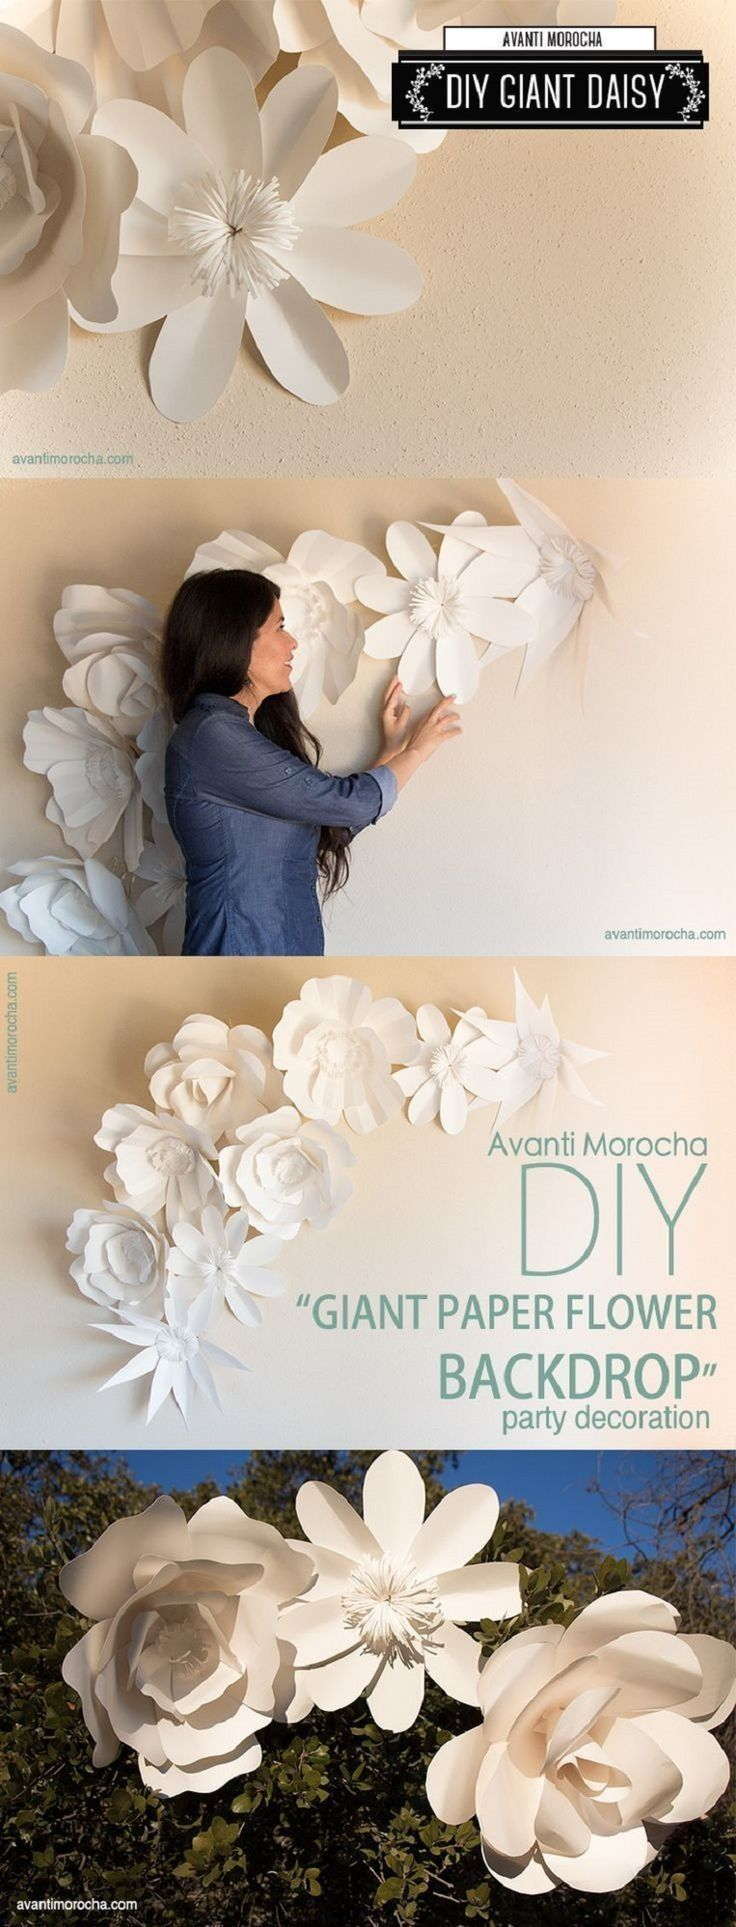 Add flowers to a brighten a wall. Good prop for a craft fair booth